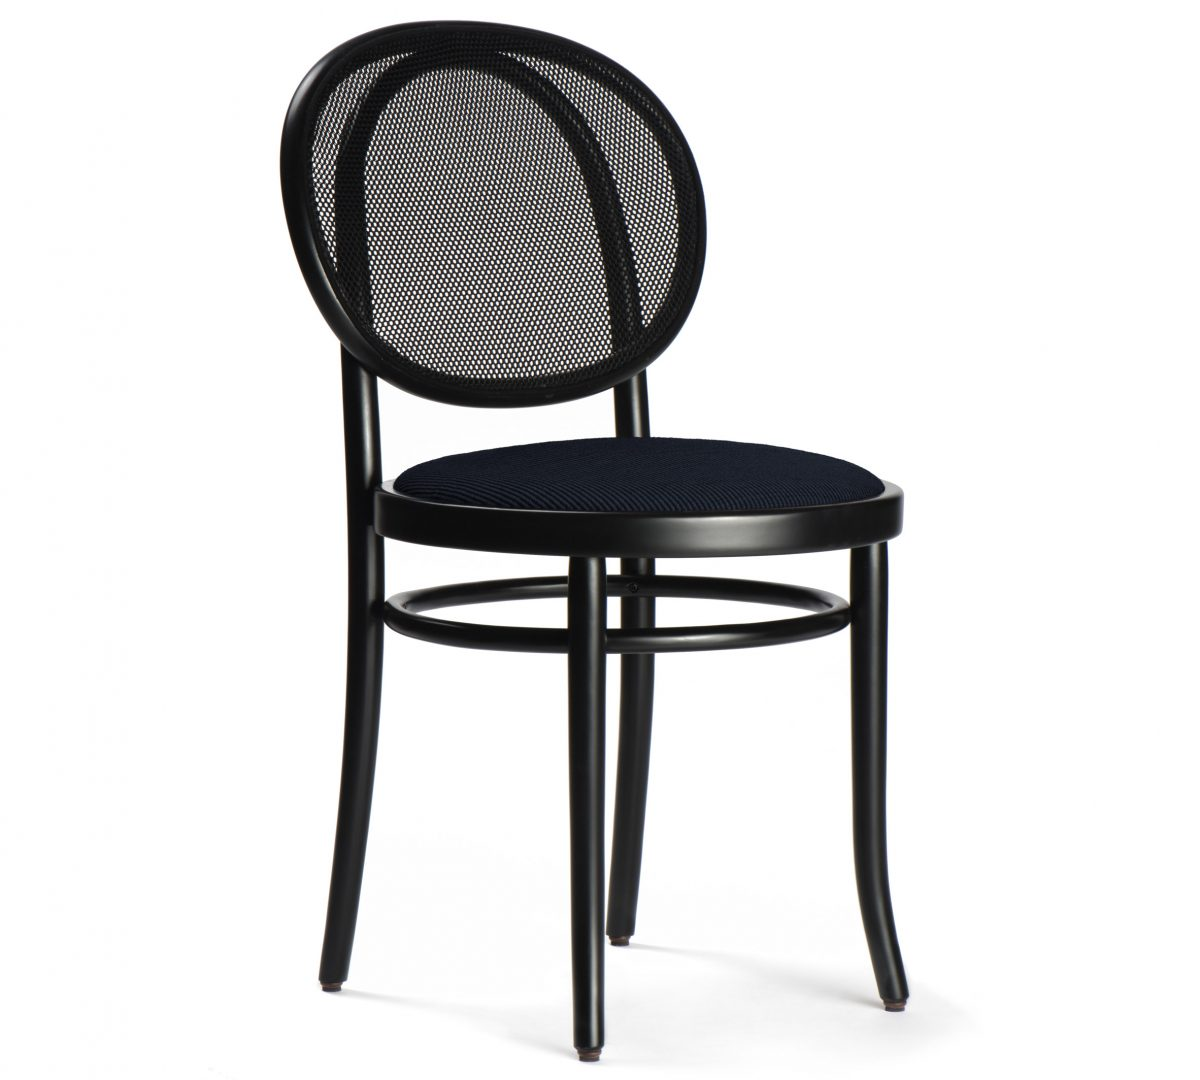 Thonet No 14 by Front